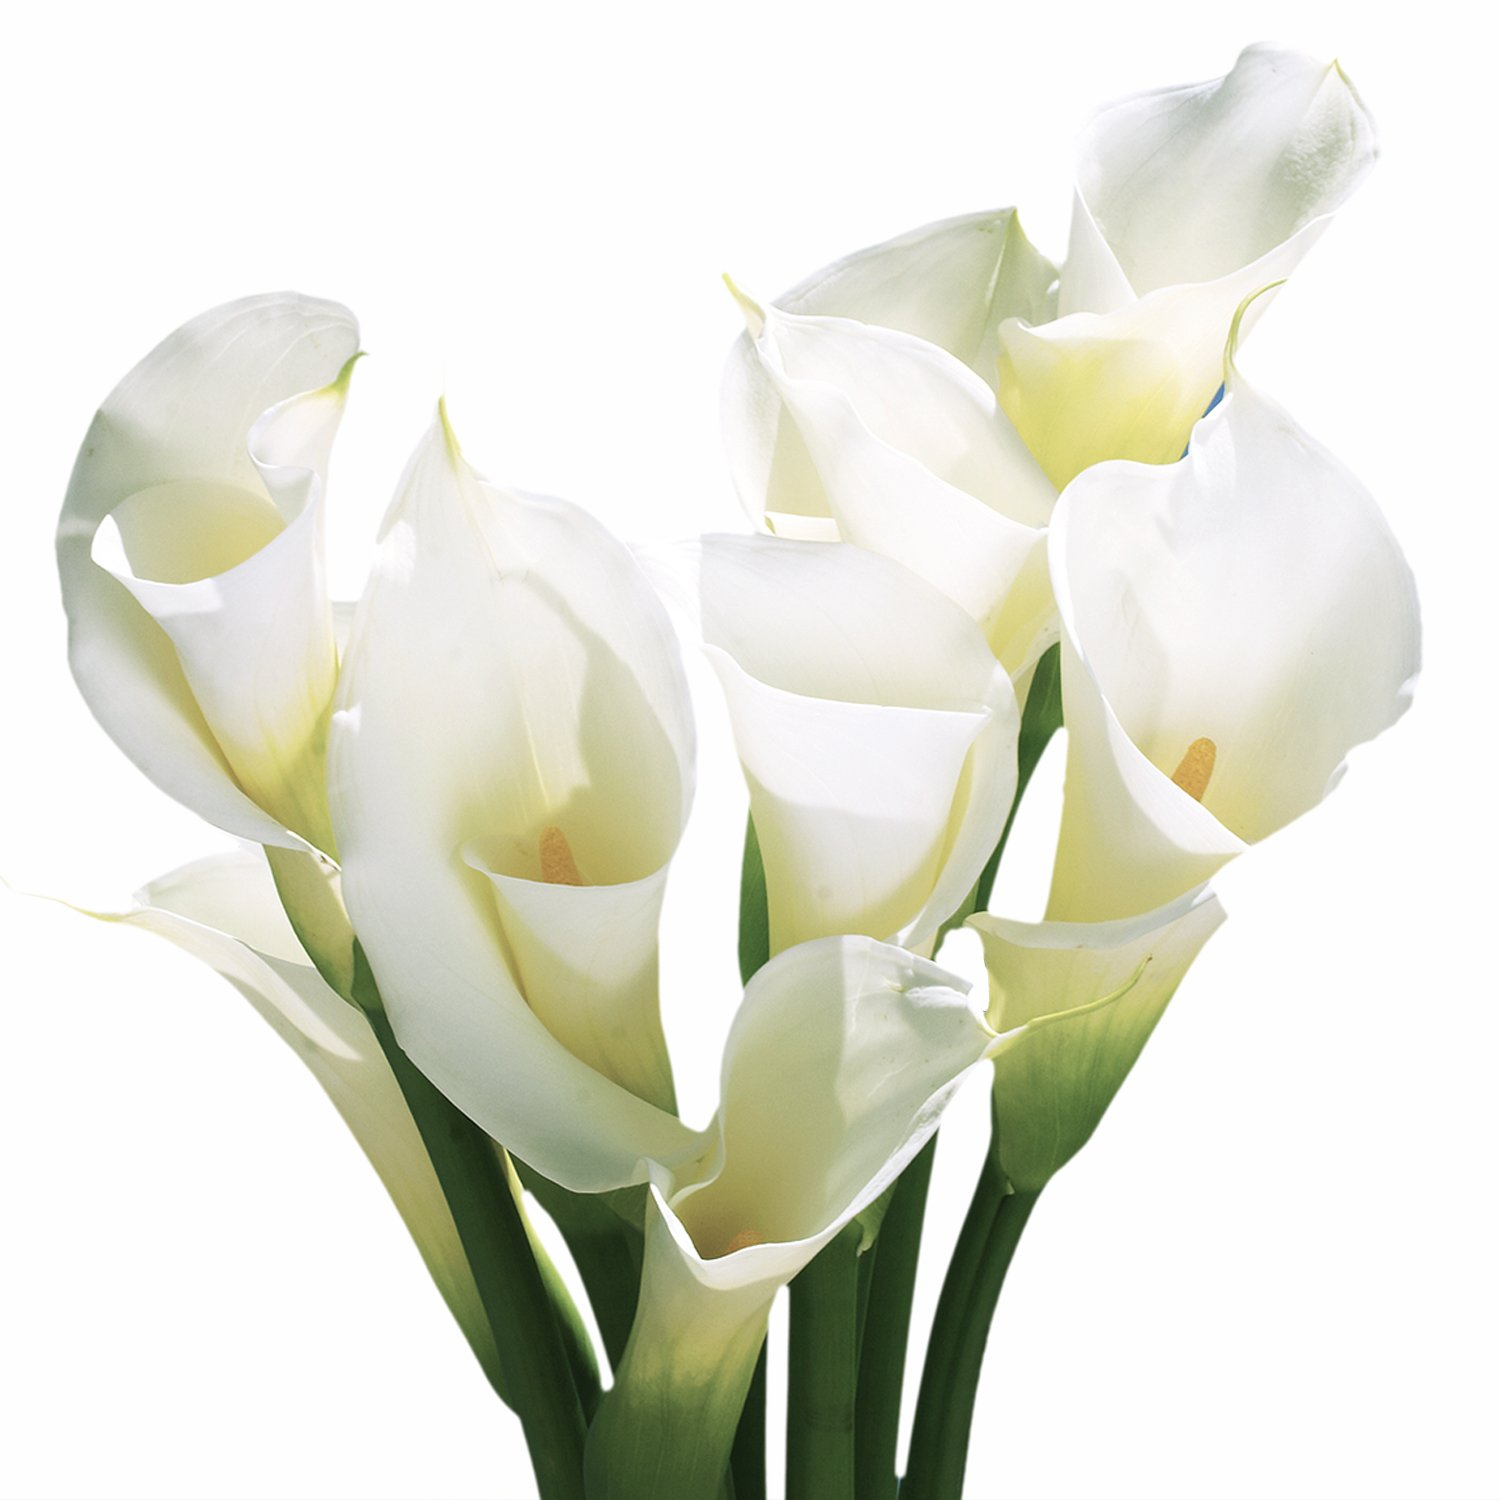 GlobalRose 36 Fresh Open Cut White Calla Lilies - Fresh Flowers For Birthdays, Weddings or Anniversary. by GlobalRose